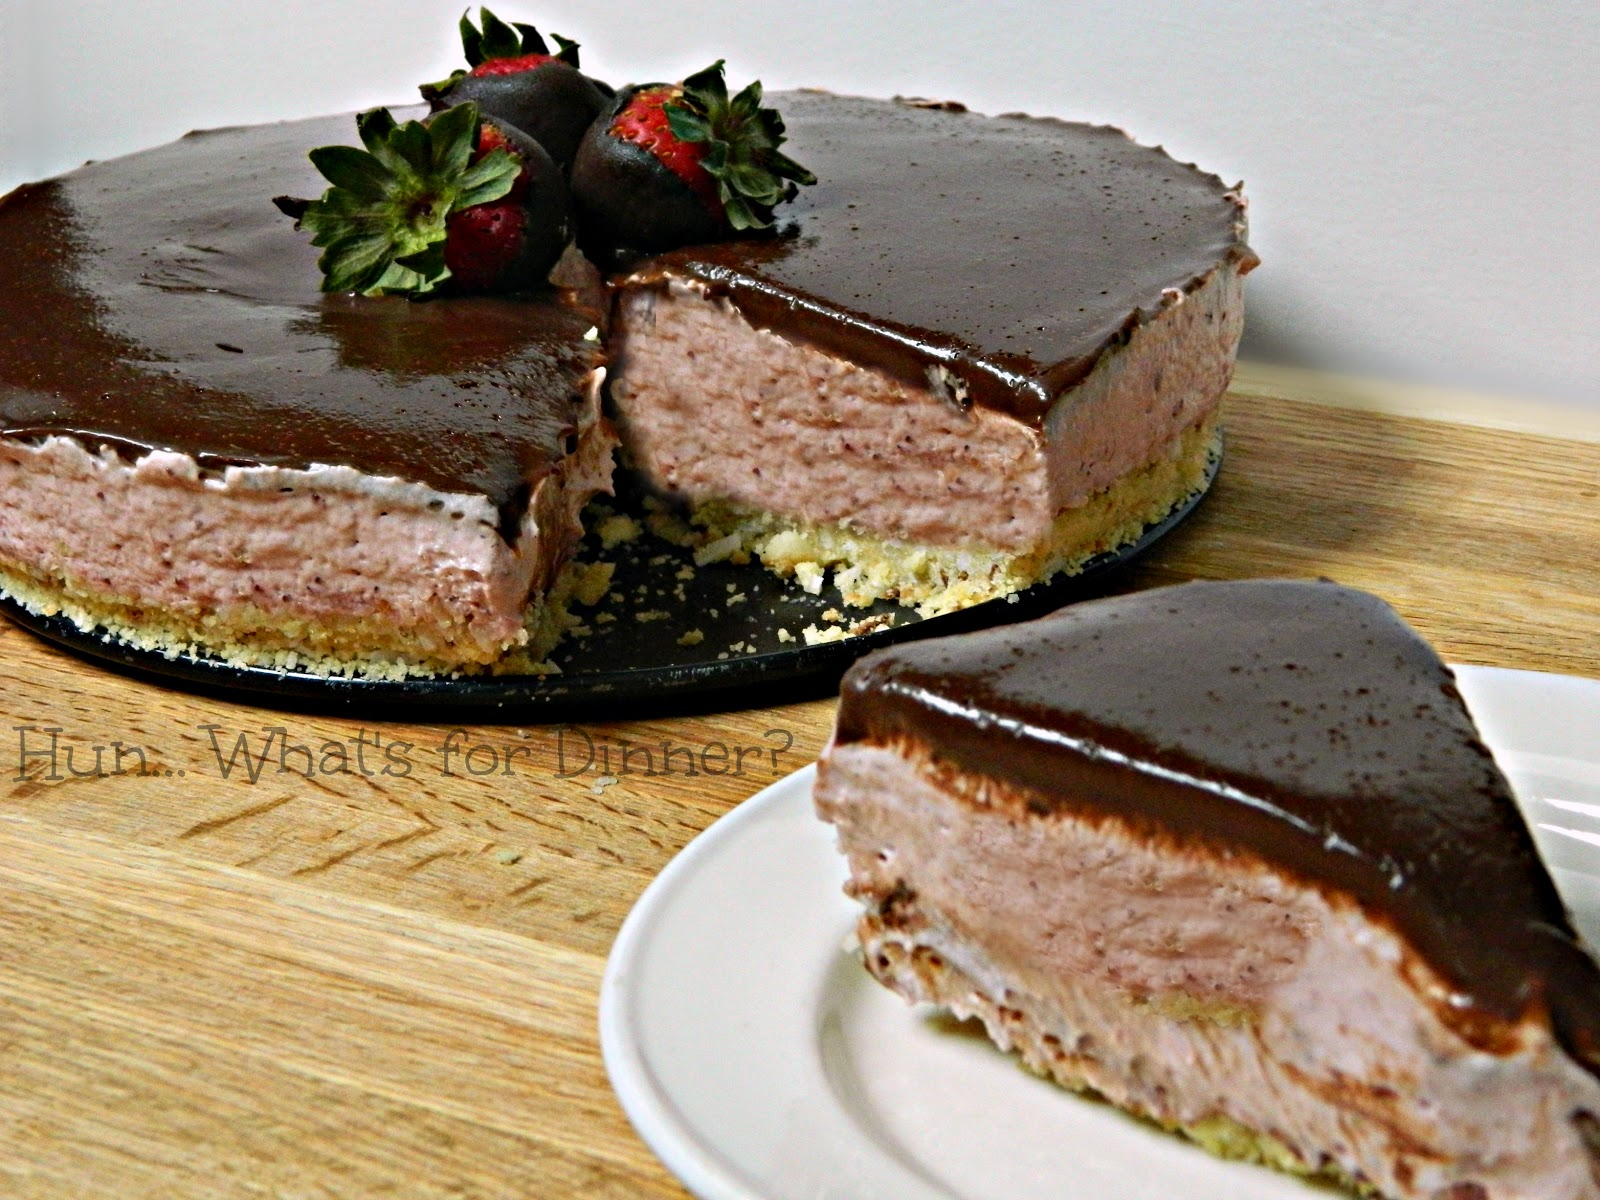 Hun... What's for Dinner?: No-Bake Chocolate Covered Strawberry Cheesecake